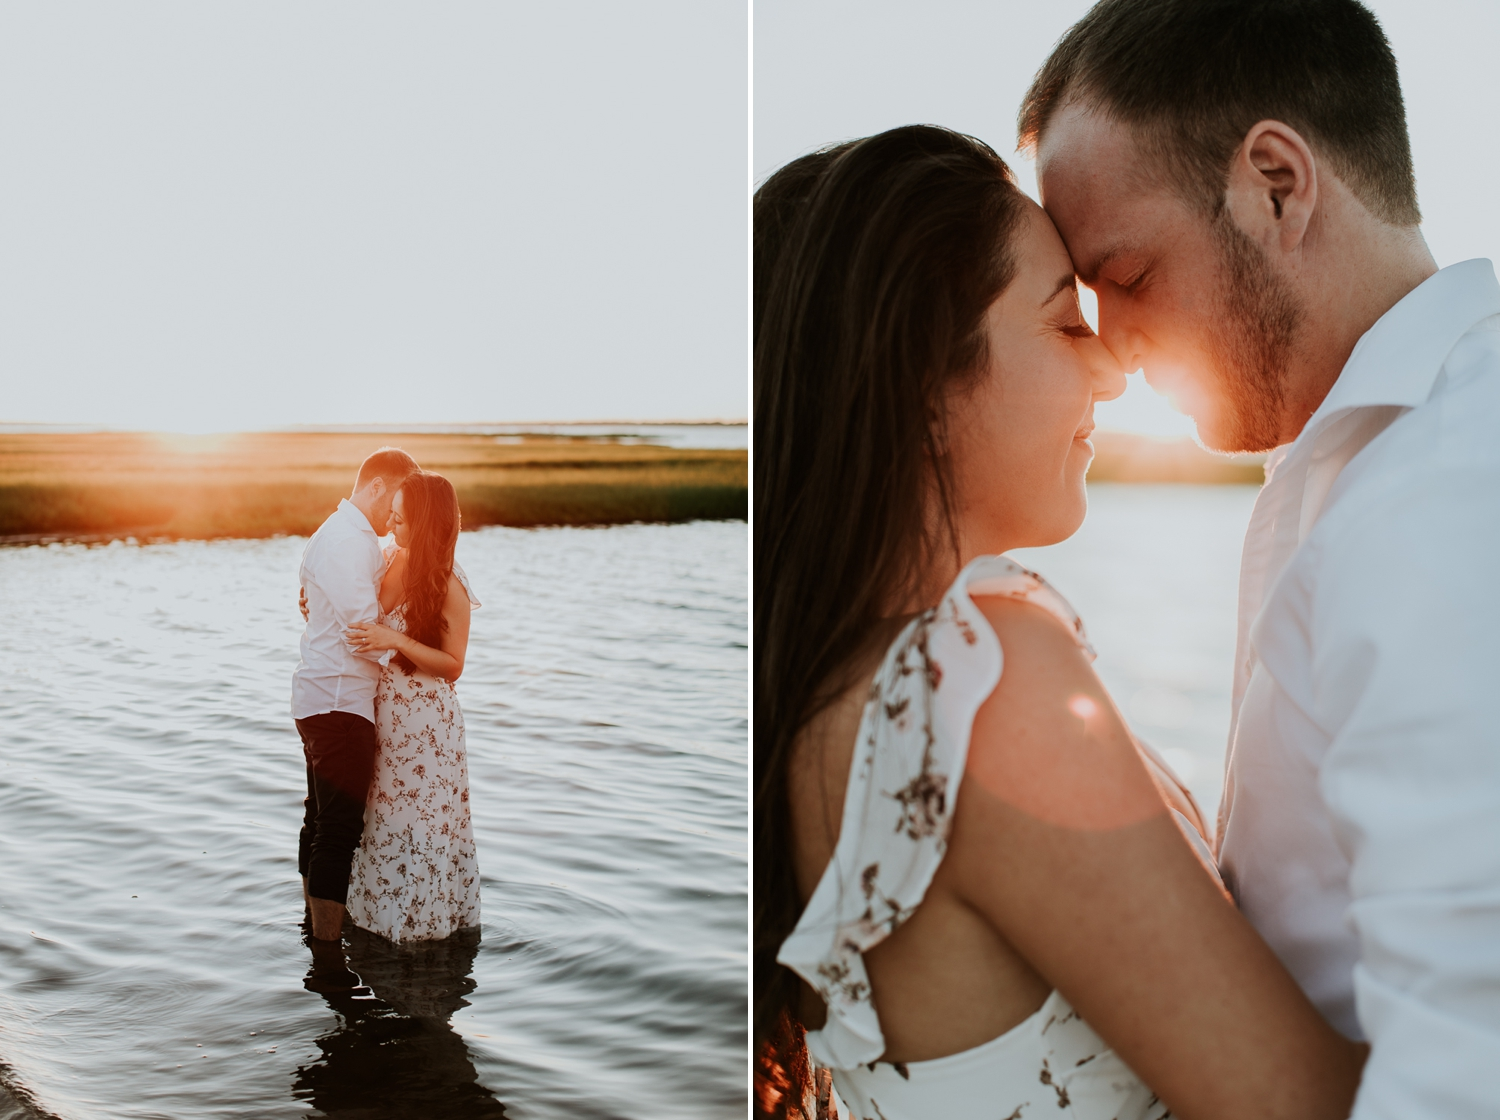 ho-hum-beach-boat-ride-engagement-photography-bellport-new-york 35.jpg